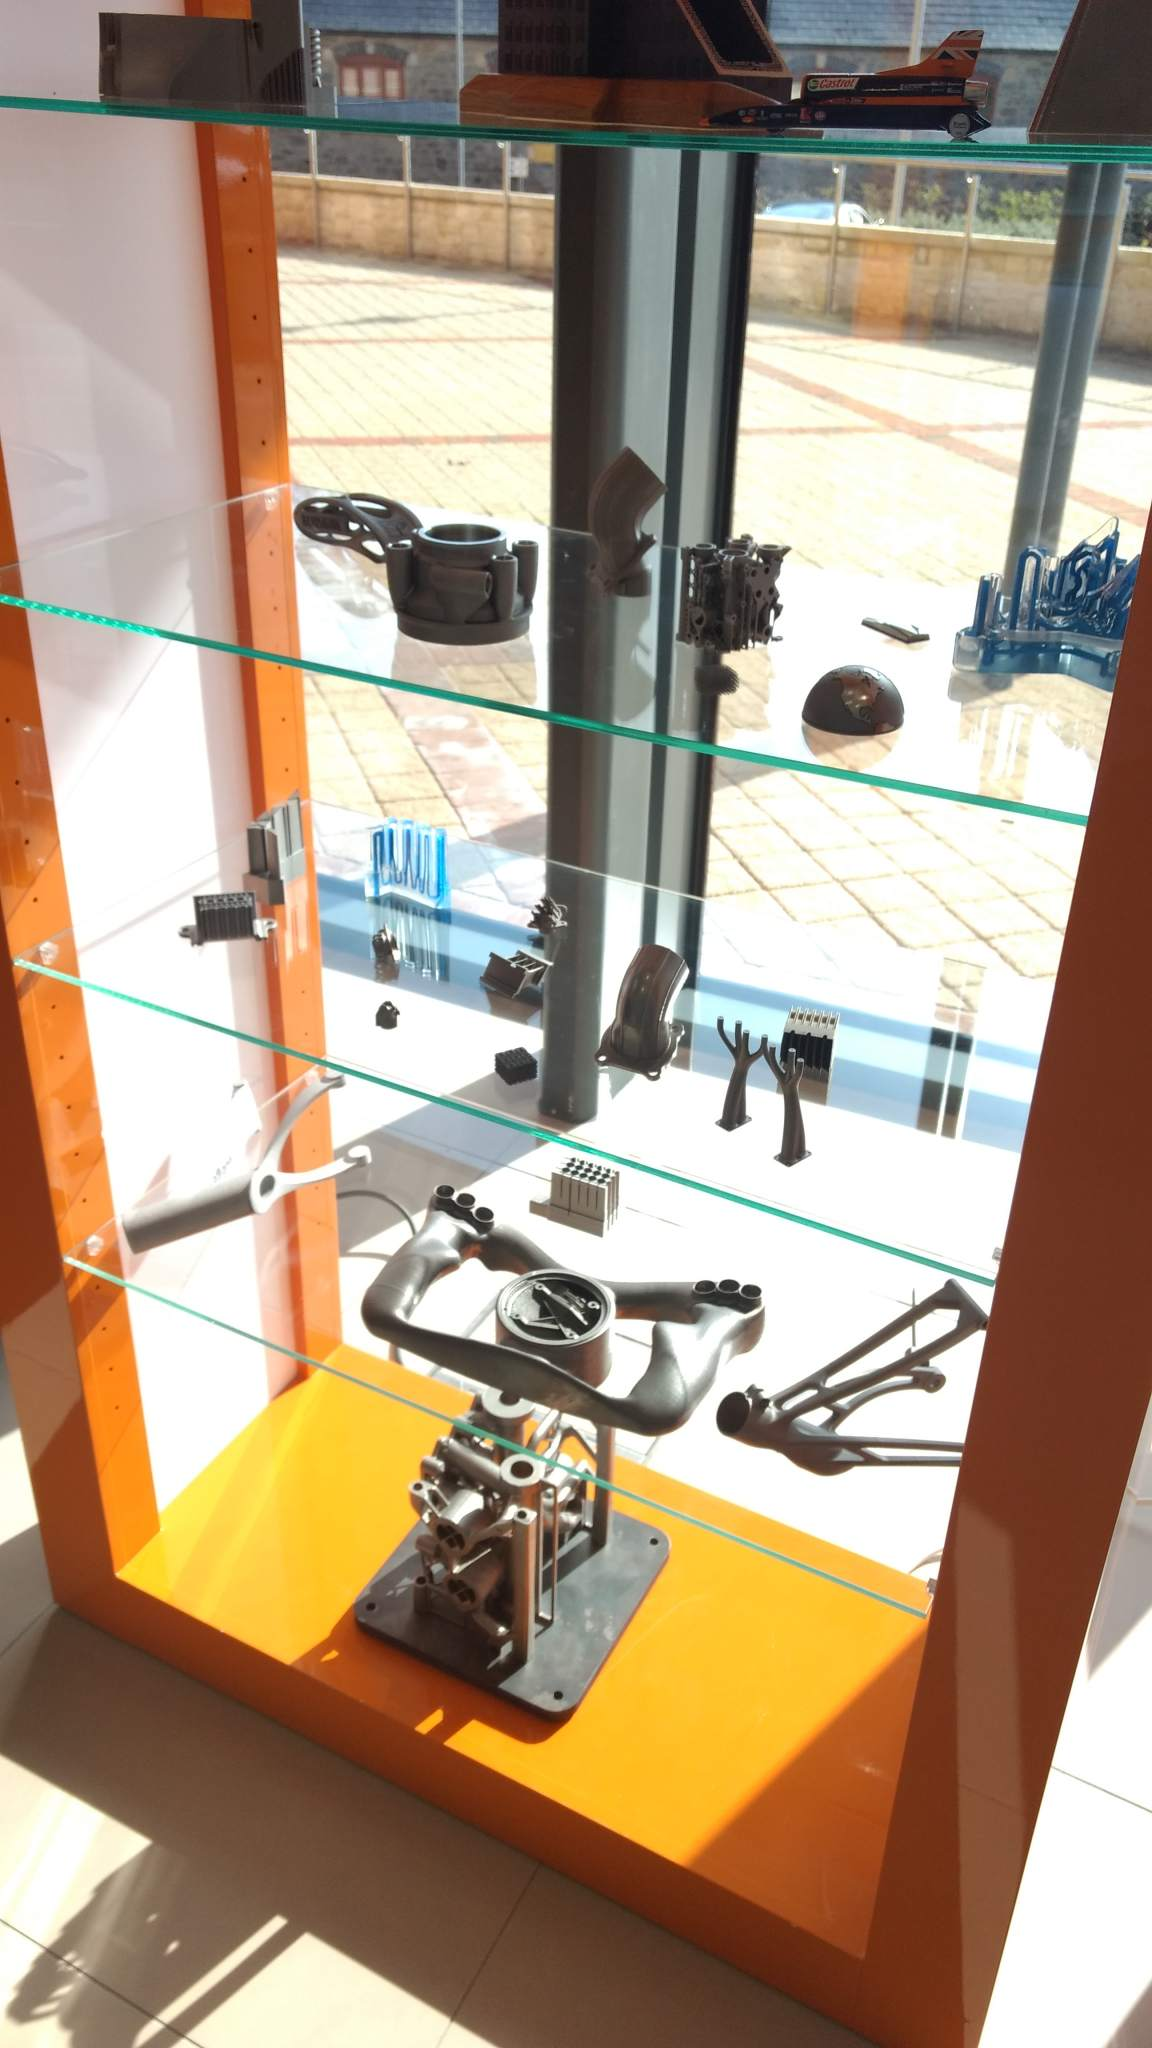 Some of the metal 3D printed parts on display at Renishaw's Innovation Centre. Photo by Corey Clarke.